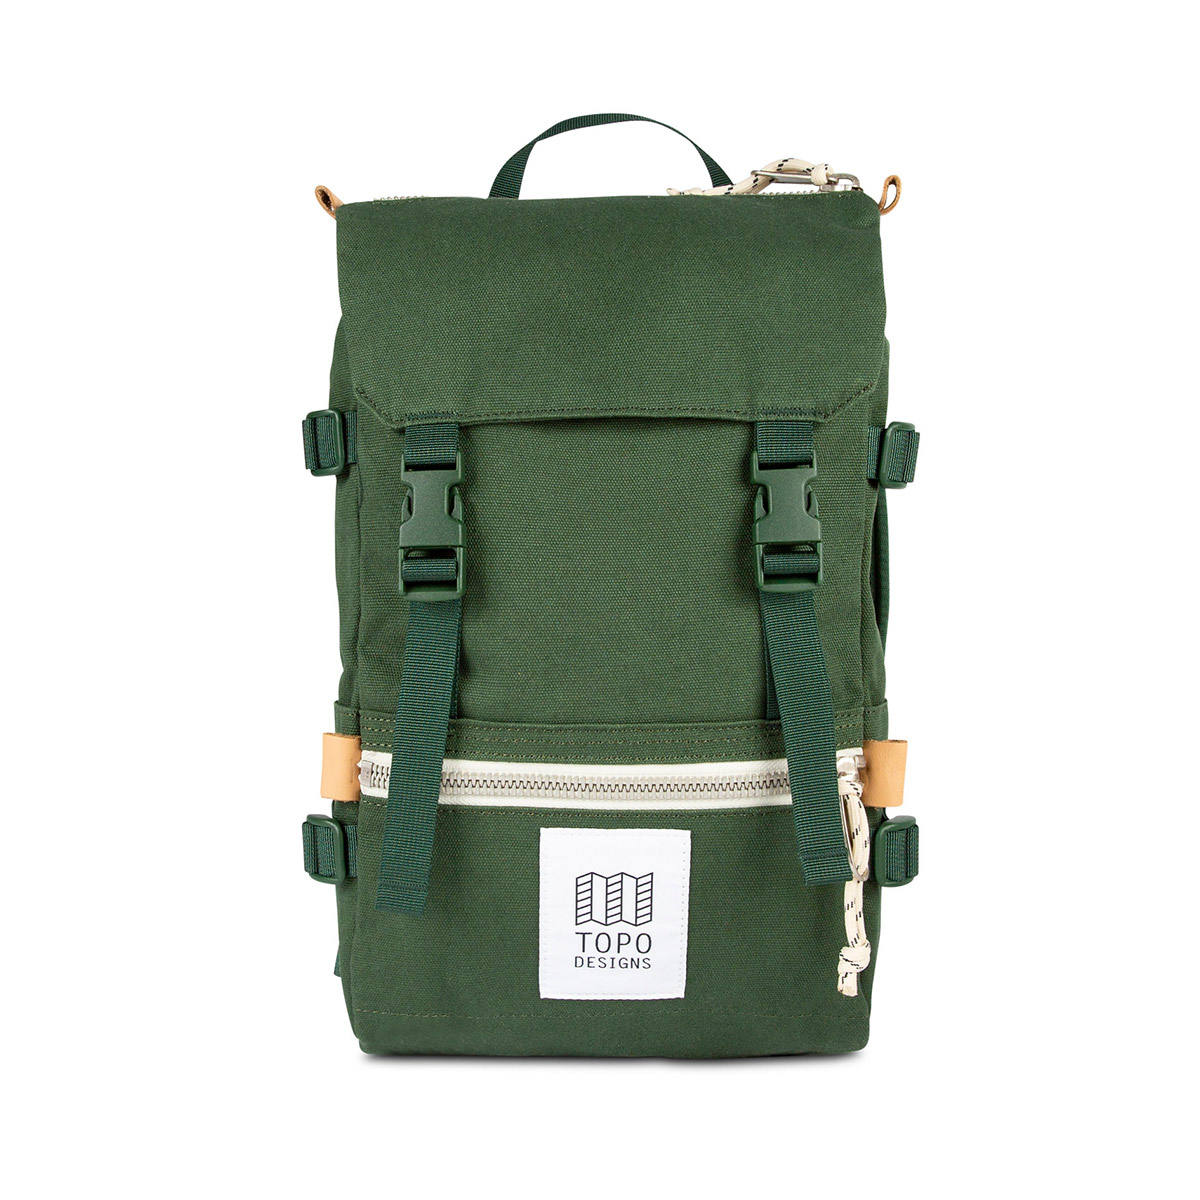 Topo Designs Rover Pack - Mini Canvas Forest, statement-making bag that's the perfect size for errands around town or on the trail